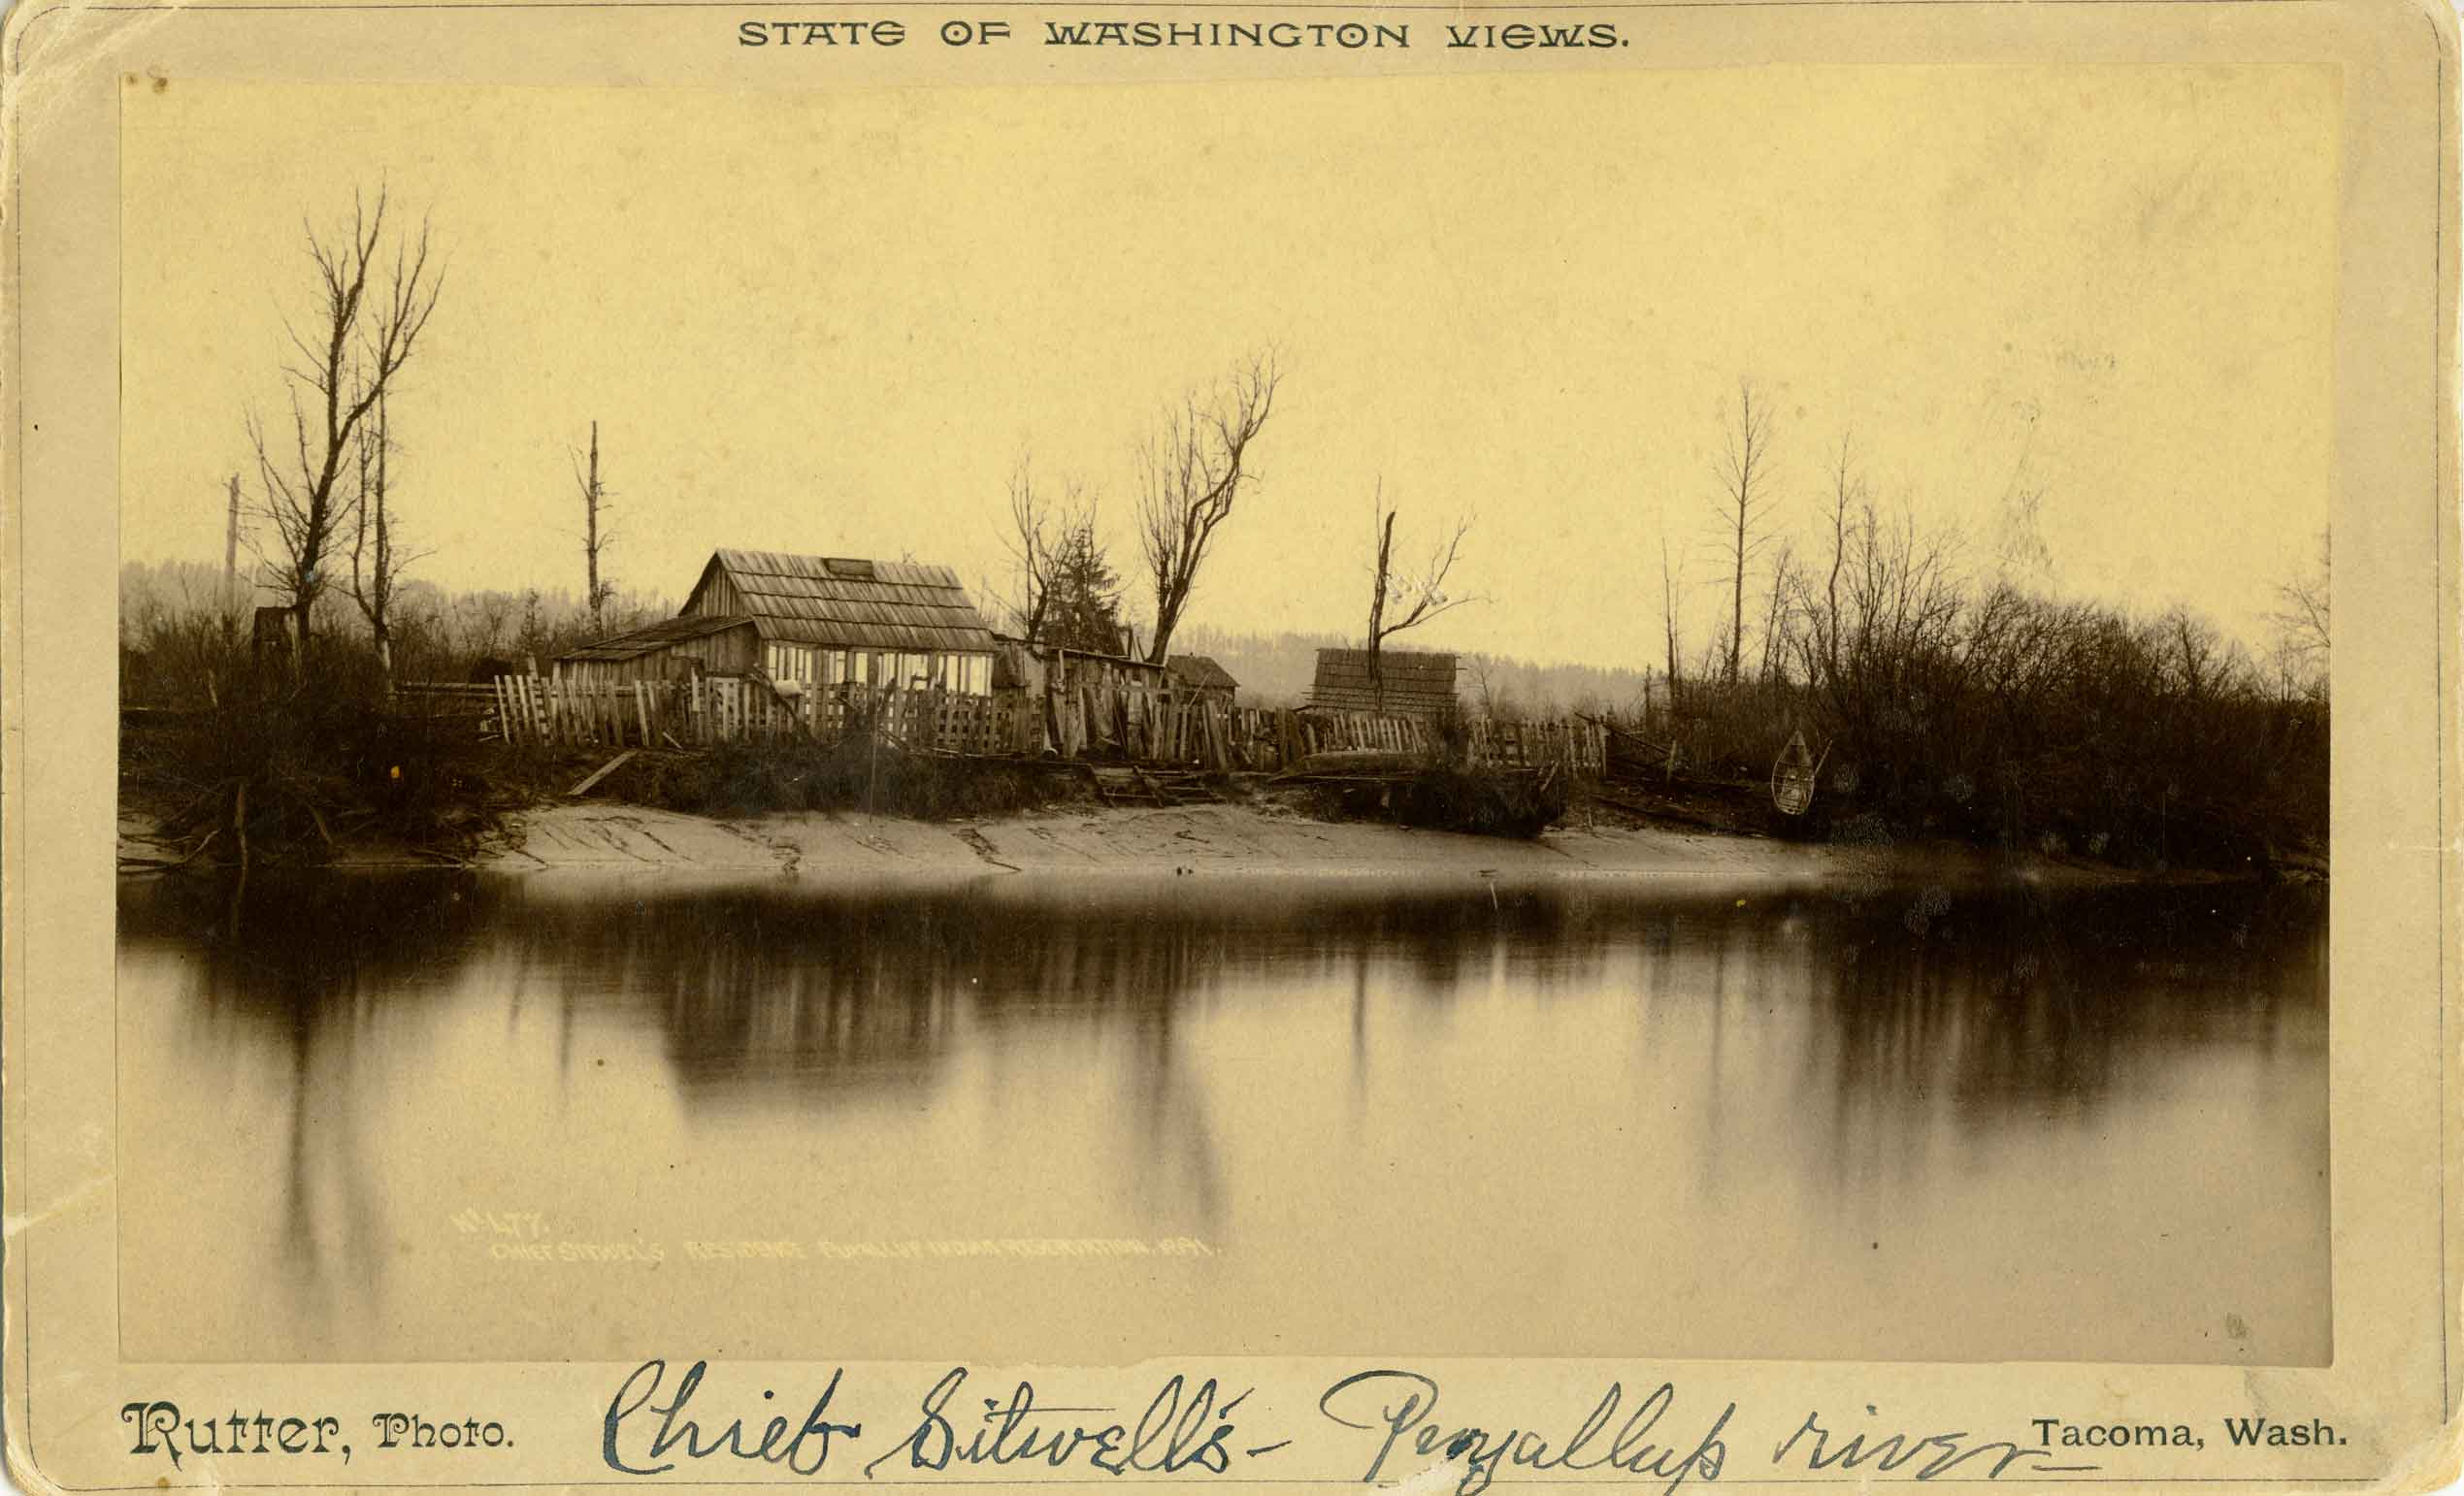 Chief Sitwell's Residence, Puyallup Indian Reservation